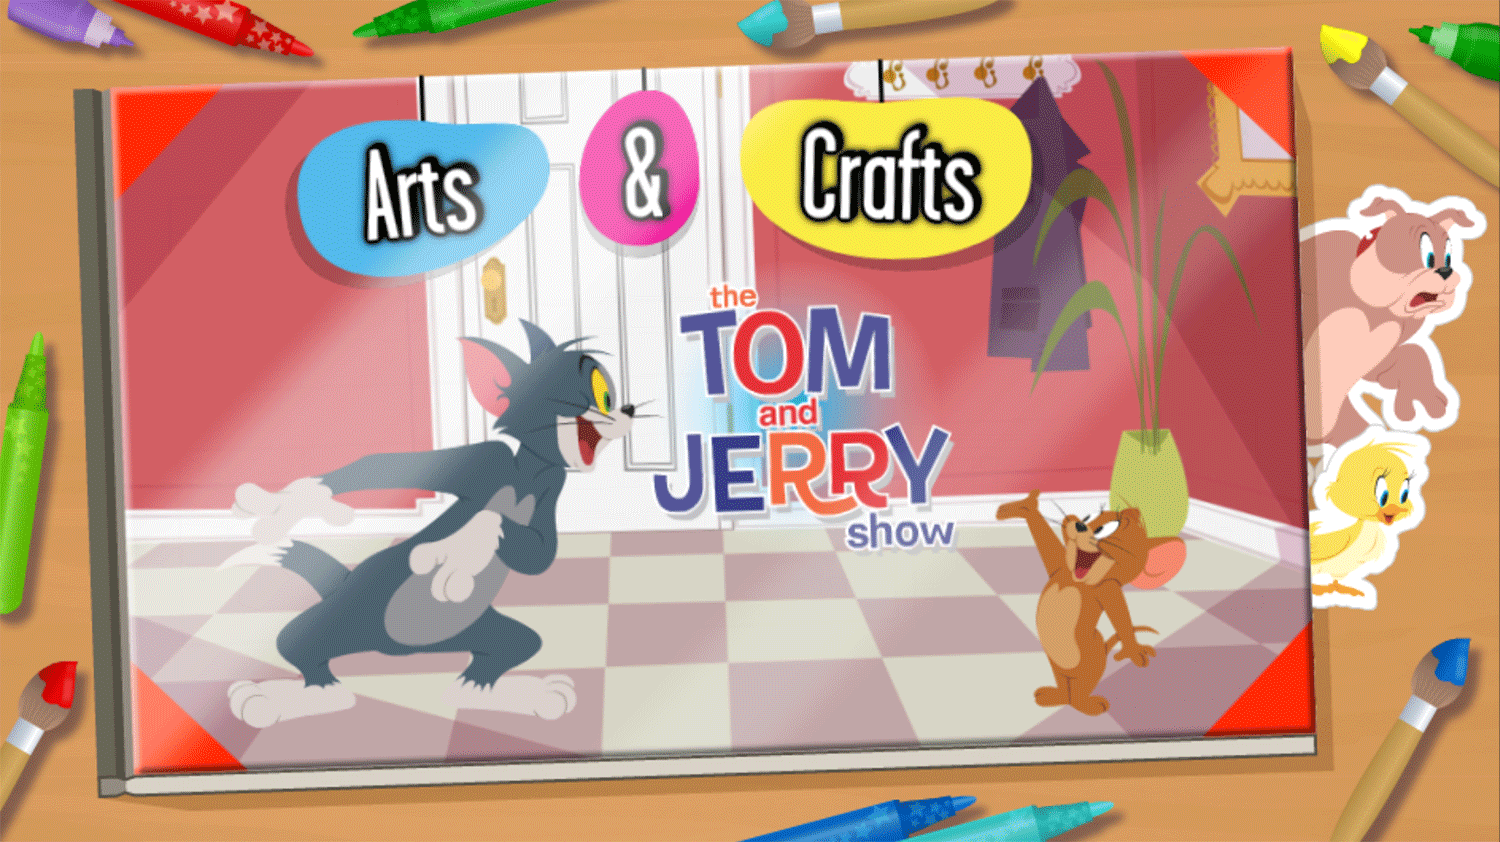 Tom and Jerry Arts and Crafts Welcome Screen Screenshots.